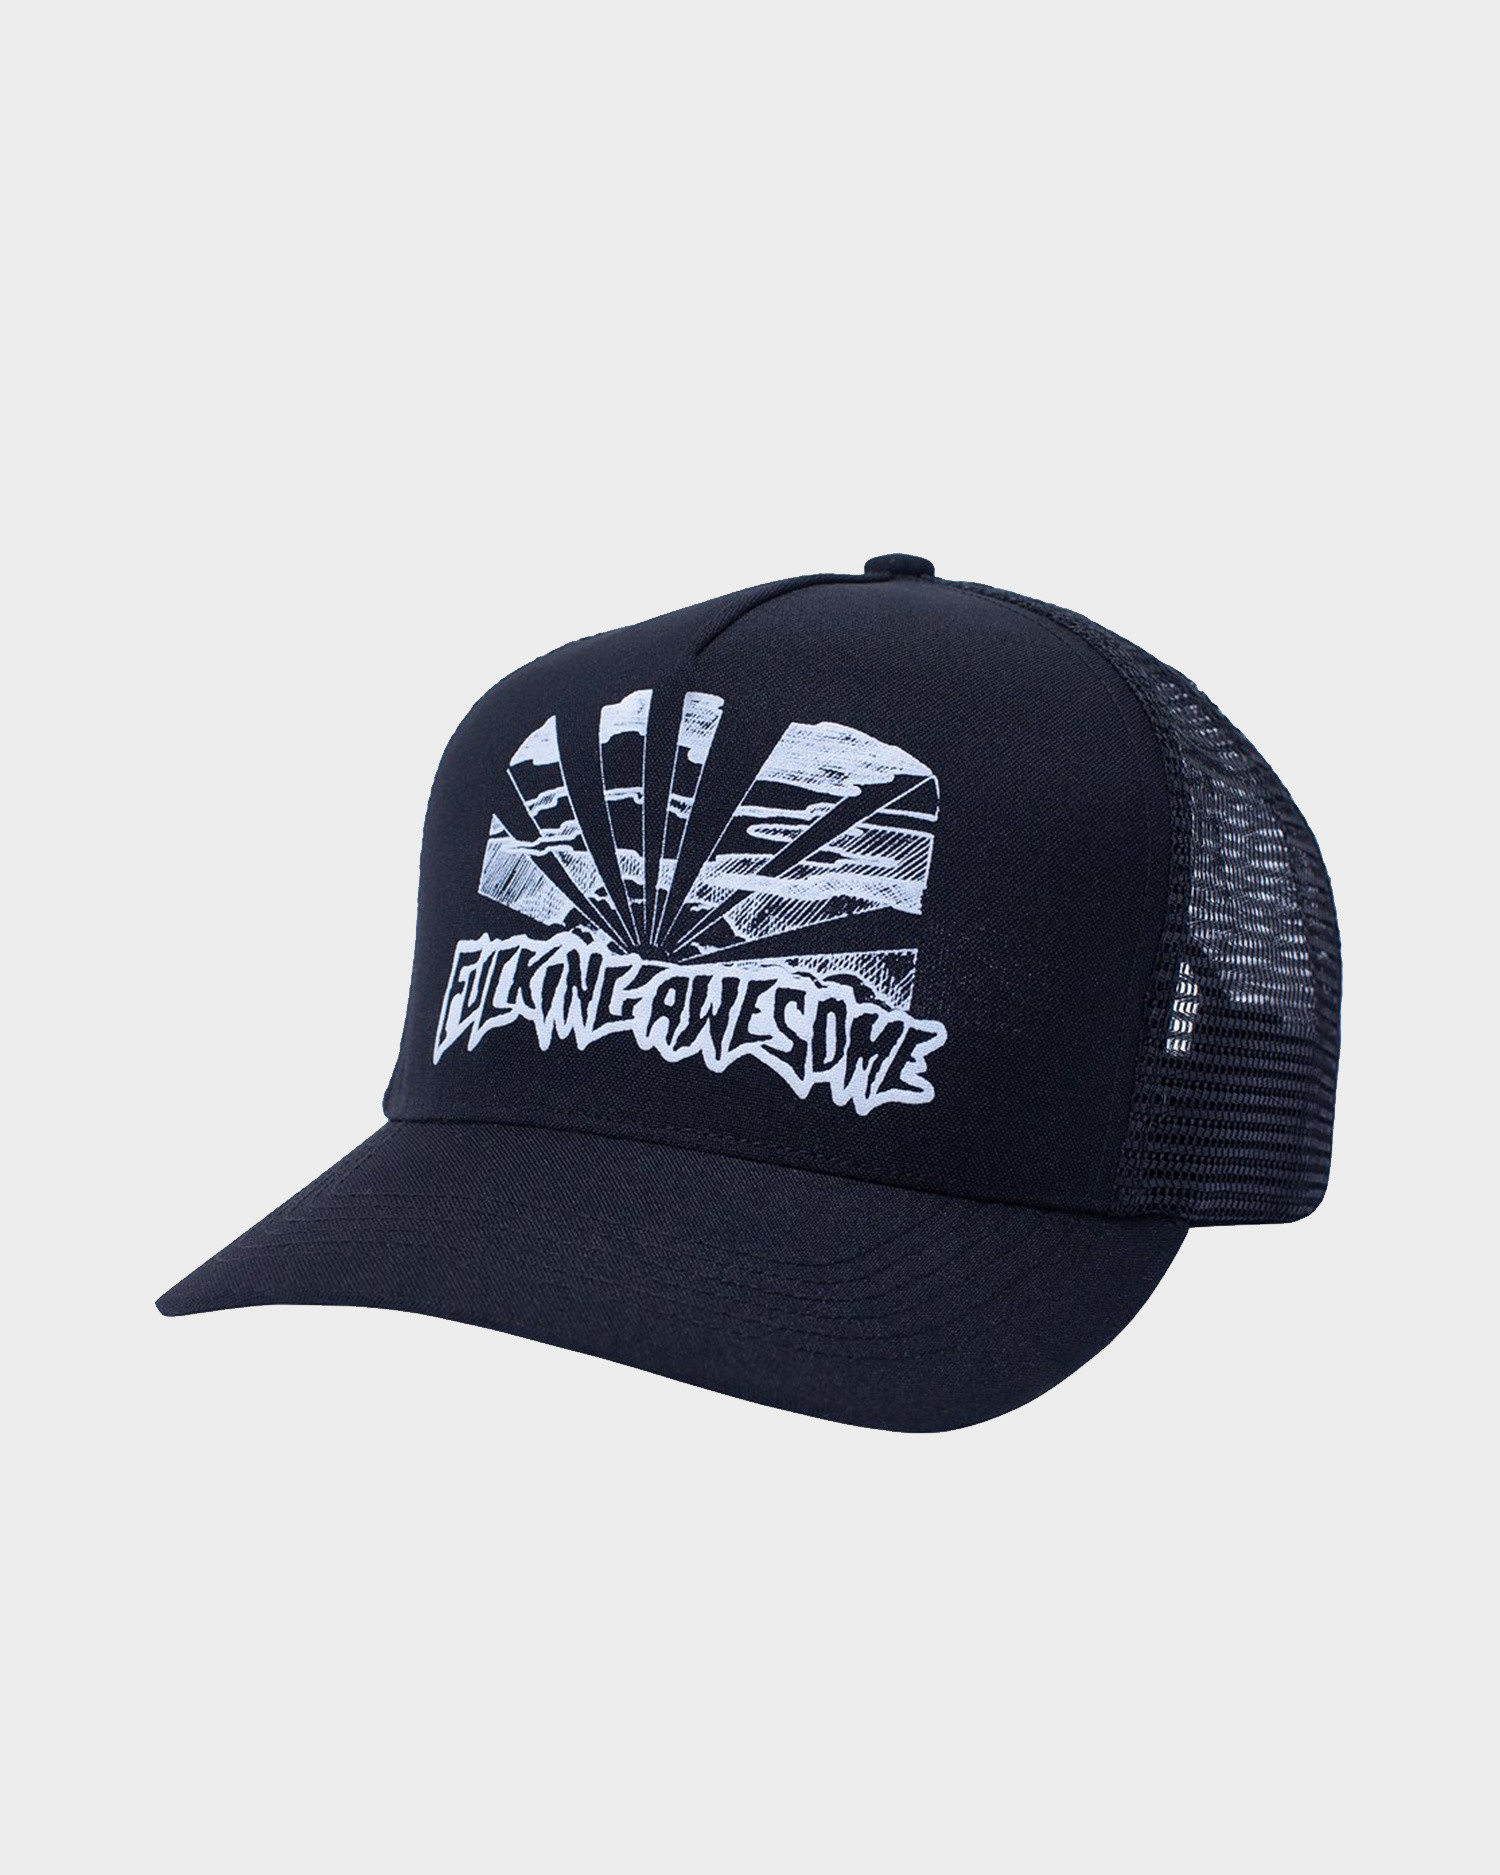 Fucking Awesome  Sunset Pre-curved Snapback Black